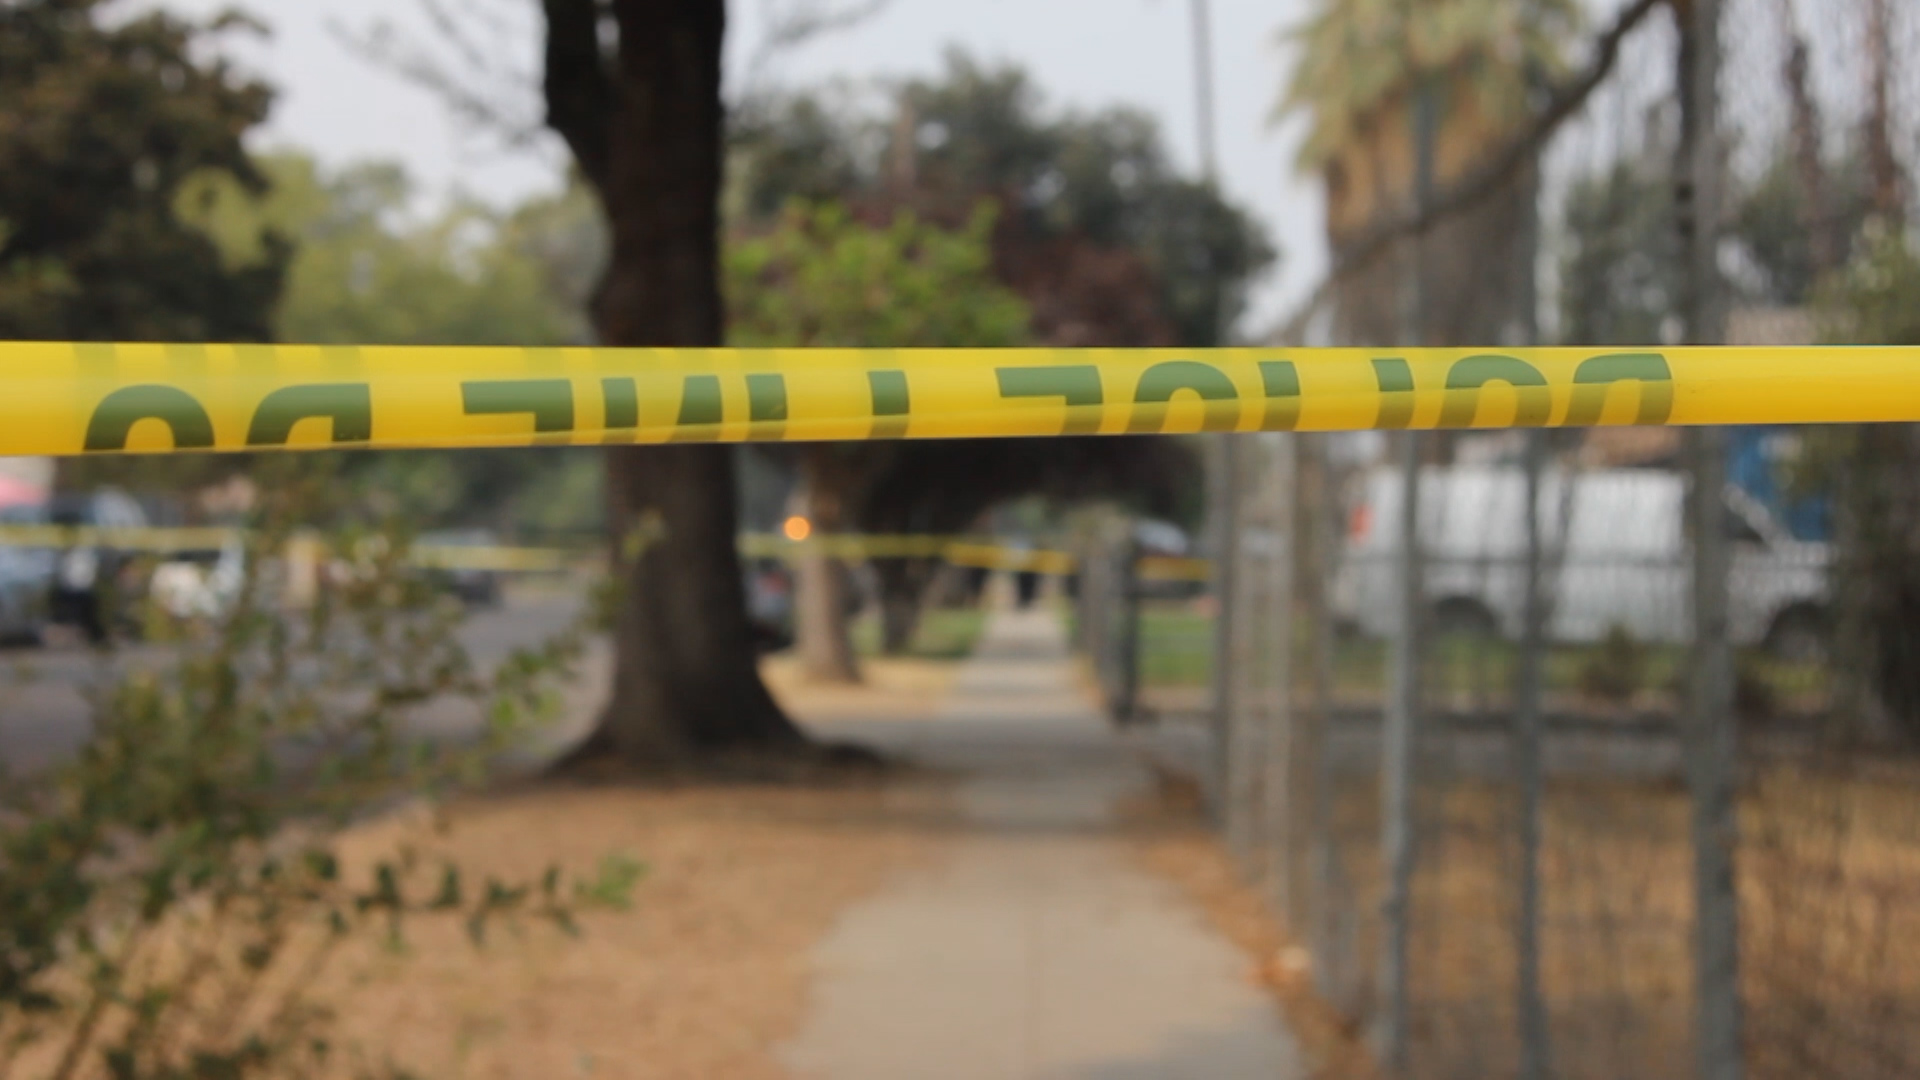 Wednesday's shootings push Fresno total to around 200 more than this time last year